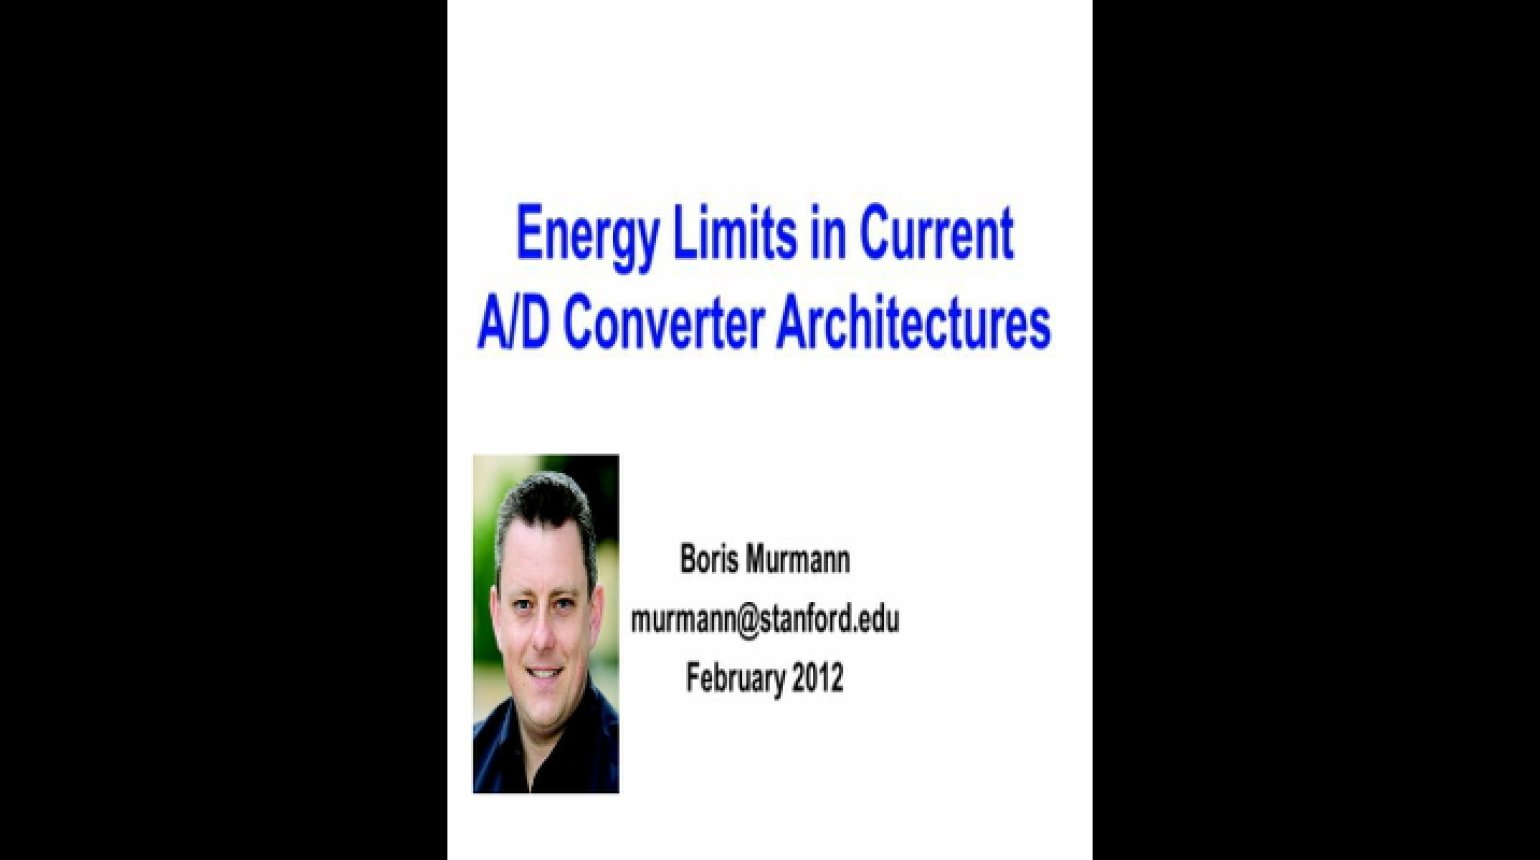 Energy Limits in Current AD Converter Architectures Video